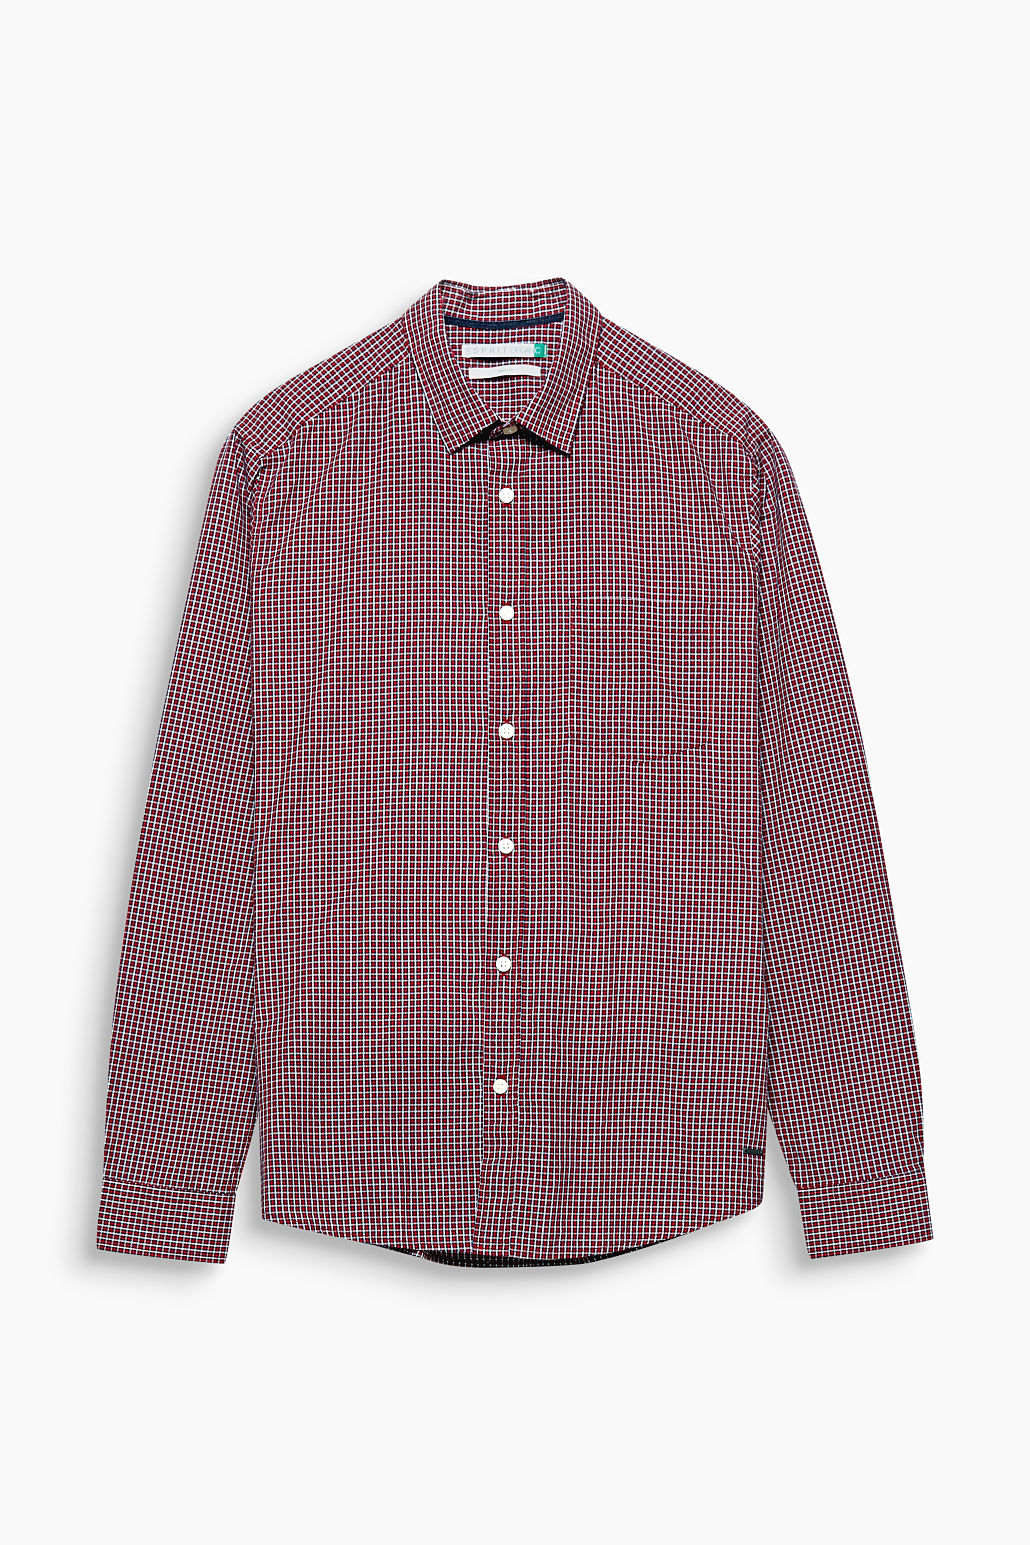 Esprit RED 630 Check Shirt in Organic Cotton